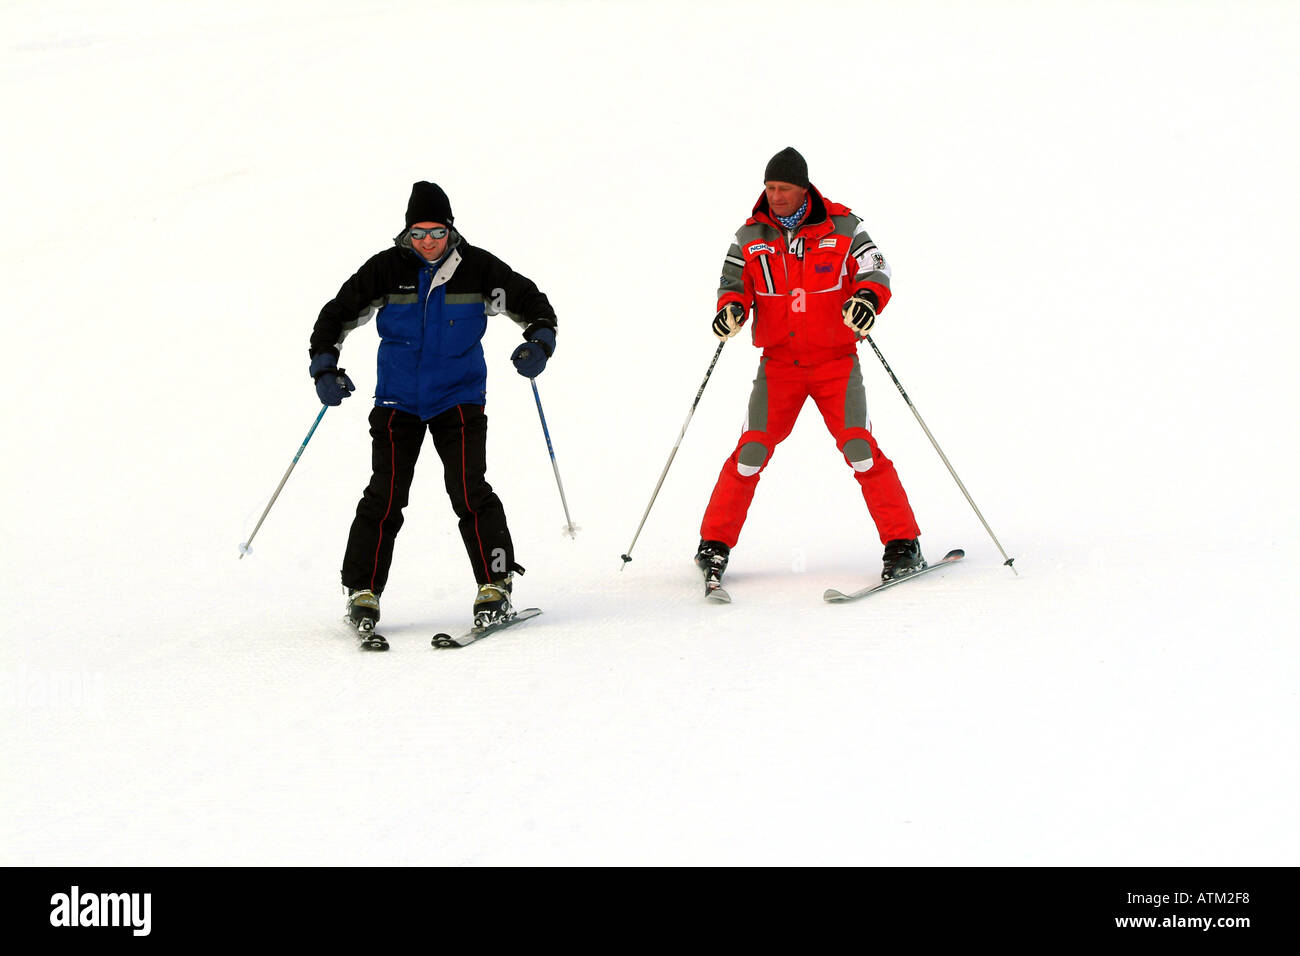 Skier under instruction in the snowplough technique on the pistes of the Schmittenhohe mountain above Zell am See  - Stock Image